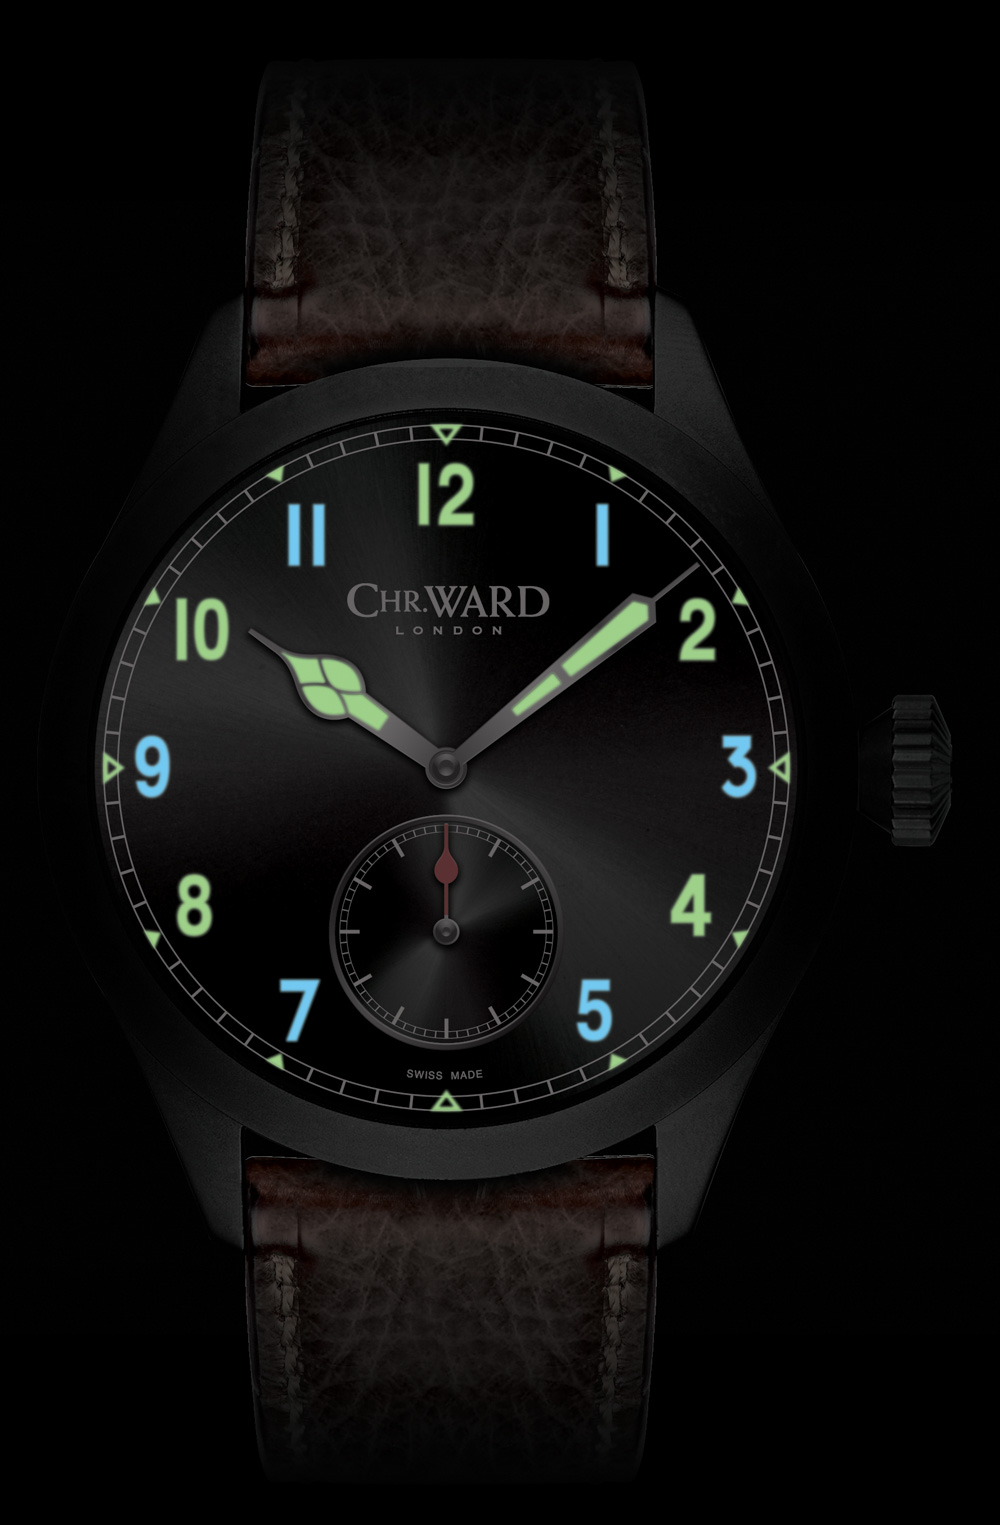 Christopher Ward C8 P7350 Chronometer Watch Silent Auction In Honour Of England's Remembrance Day Sales & Auctions